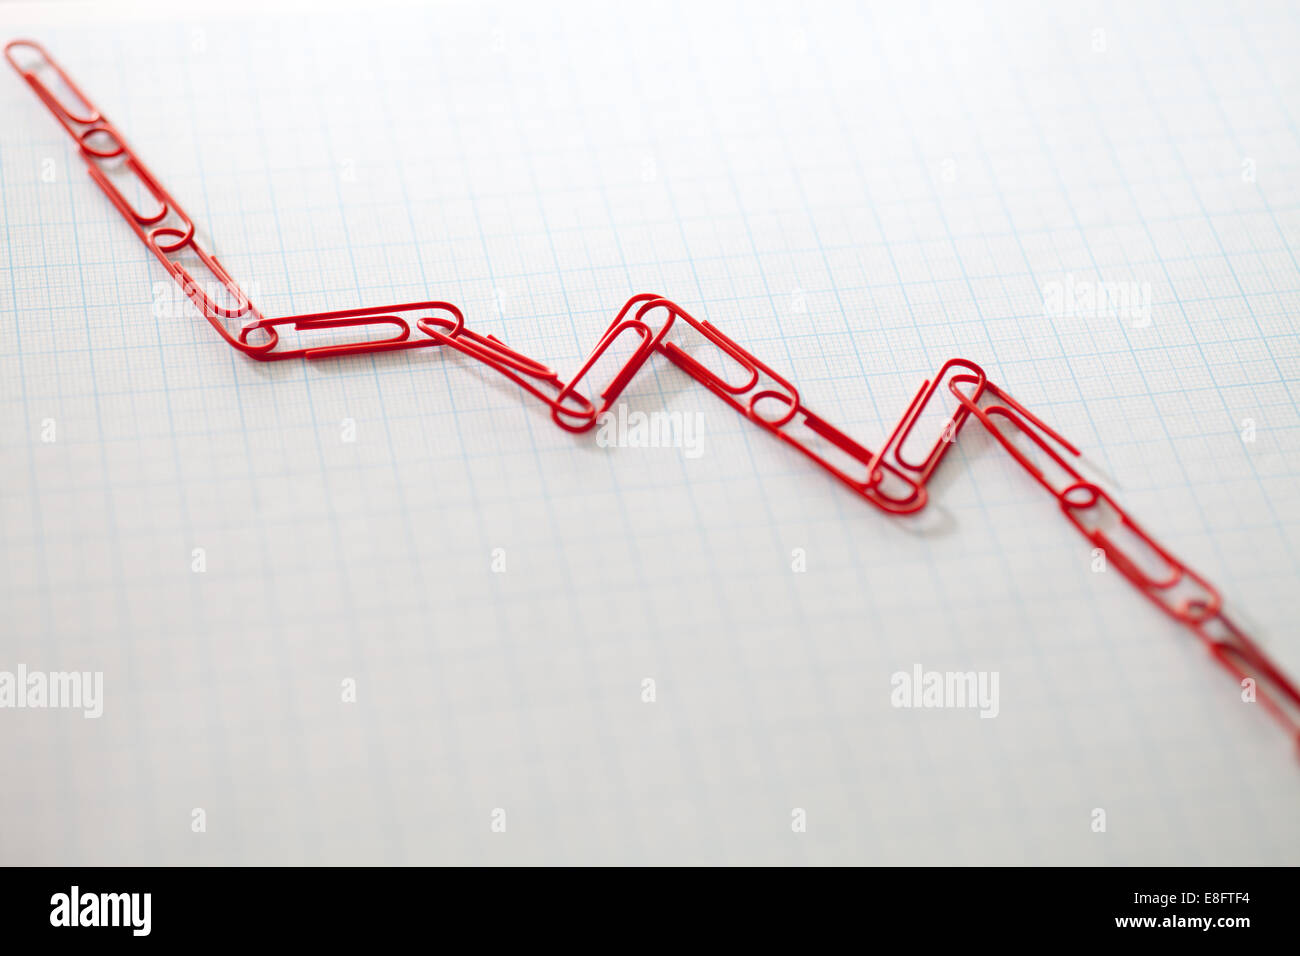 Linked paper clips on graph paper - Stock Image